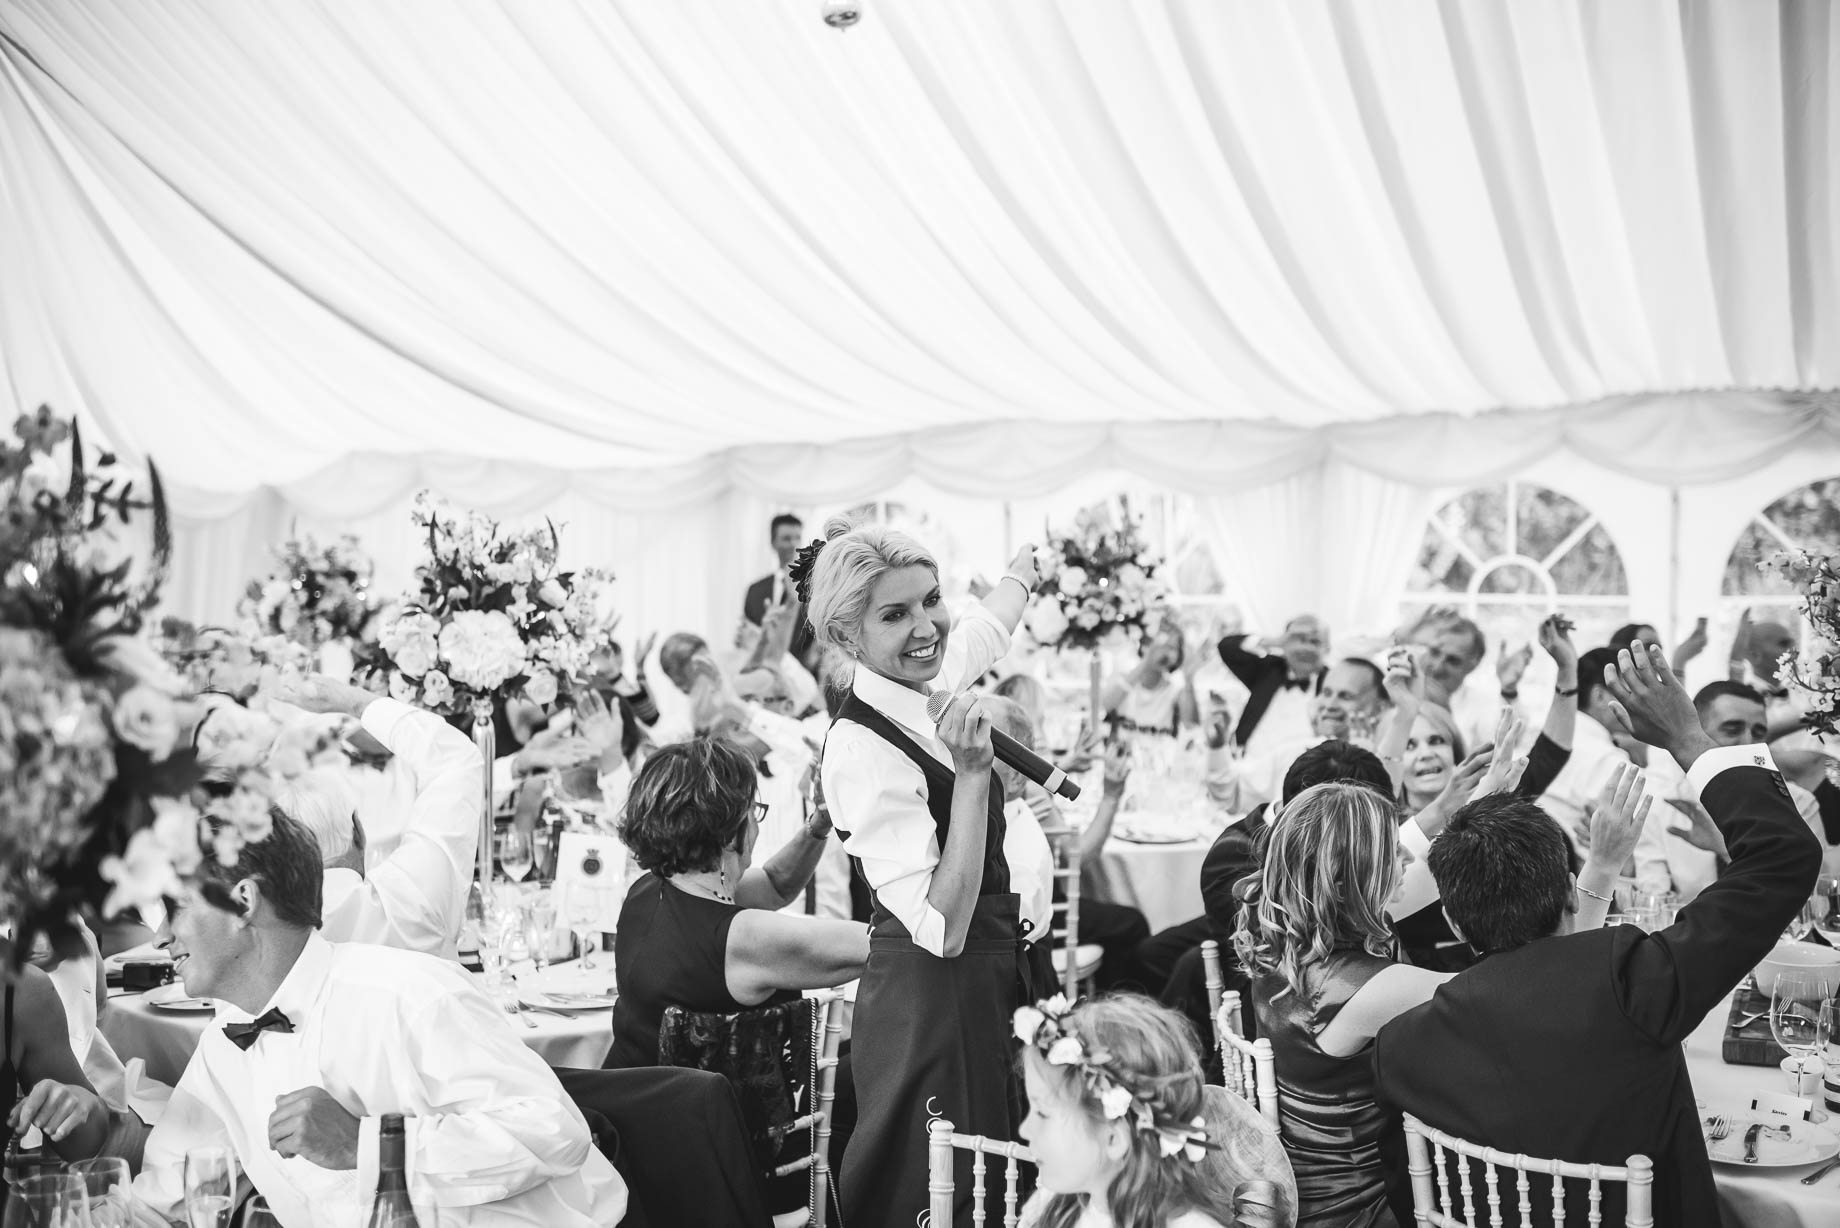 Hampshire wedding photography - Emily and Rob - Guy Collier Photography (176 of 192)